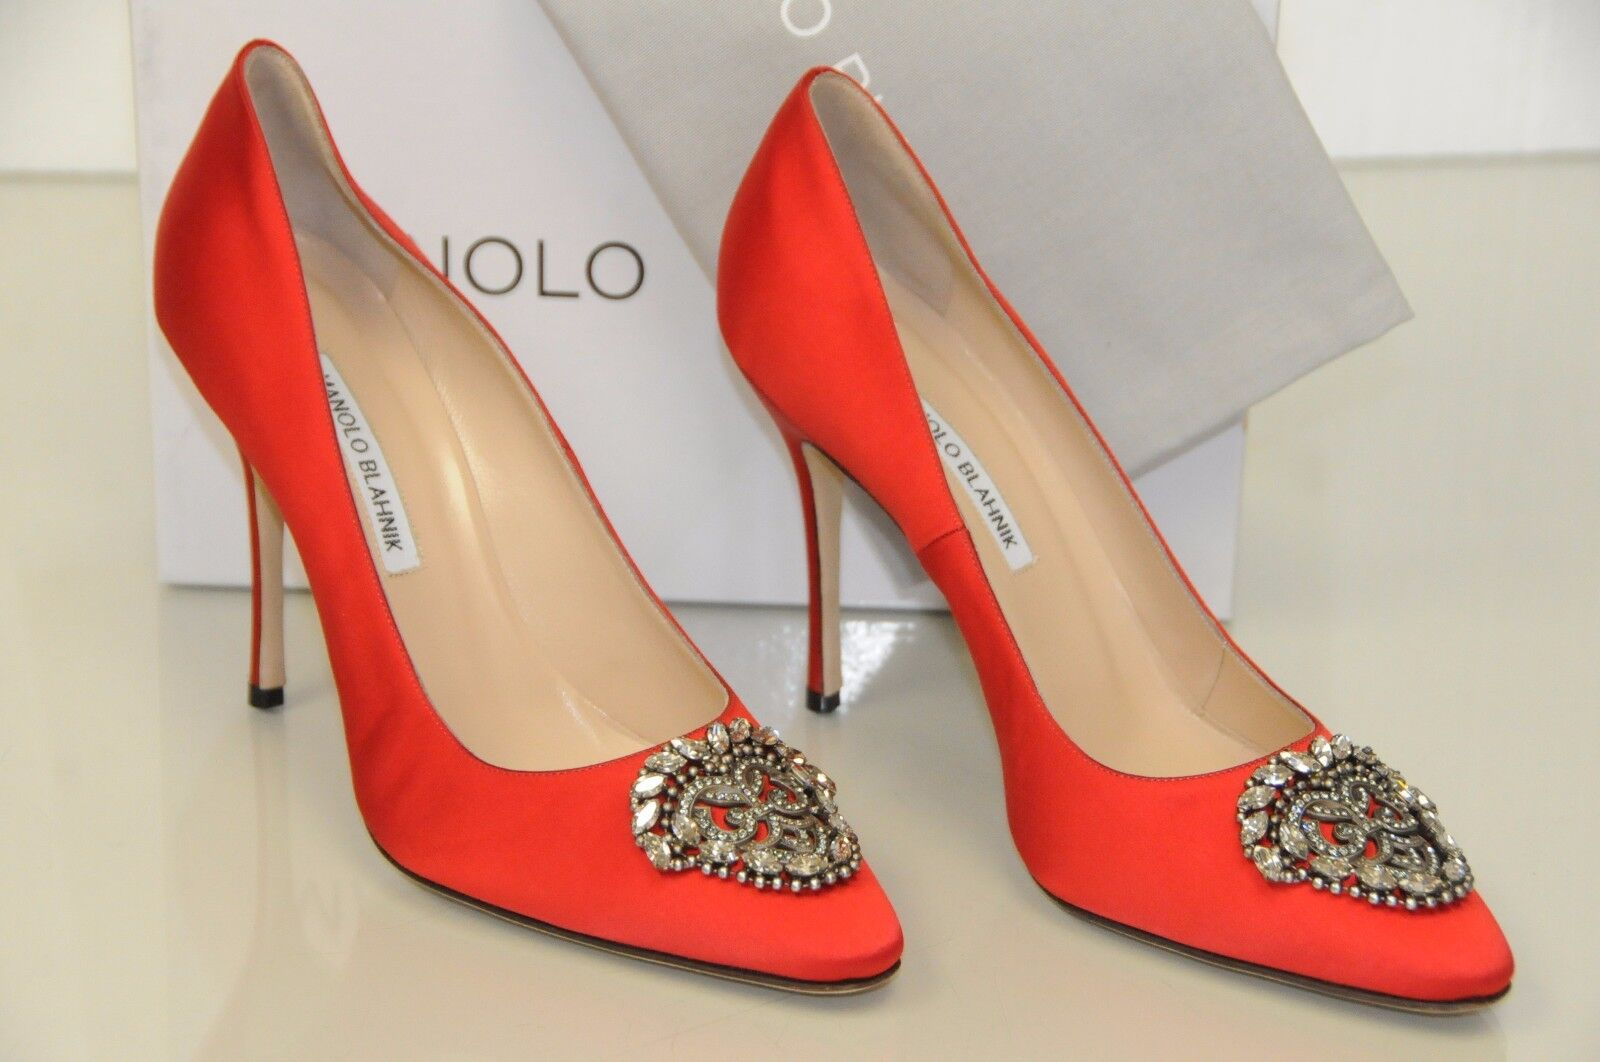 1065 NEW MANOLO BLAHNIK OKKAVA 105 Jeweled Crystal Buckle Satin RED Pumps 40.5